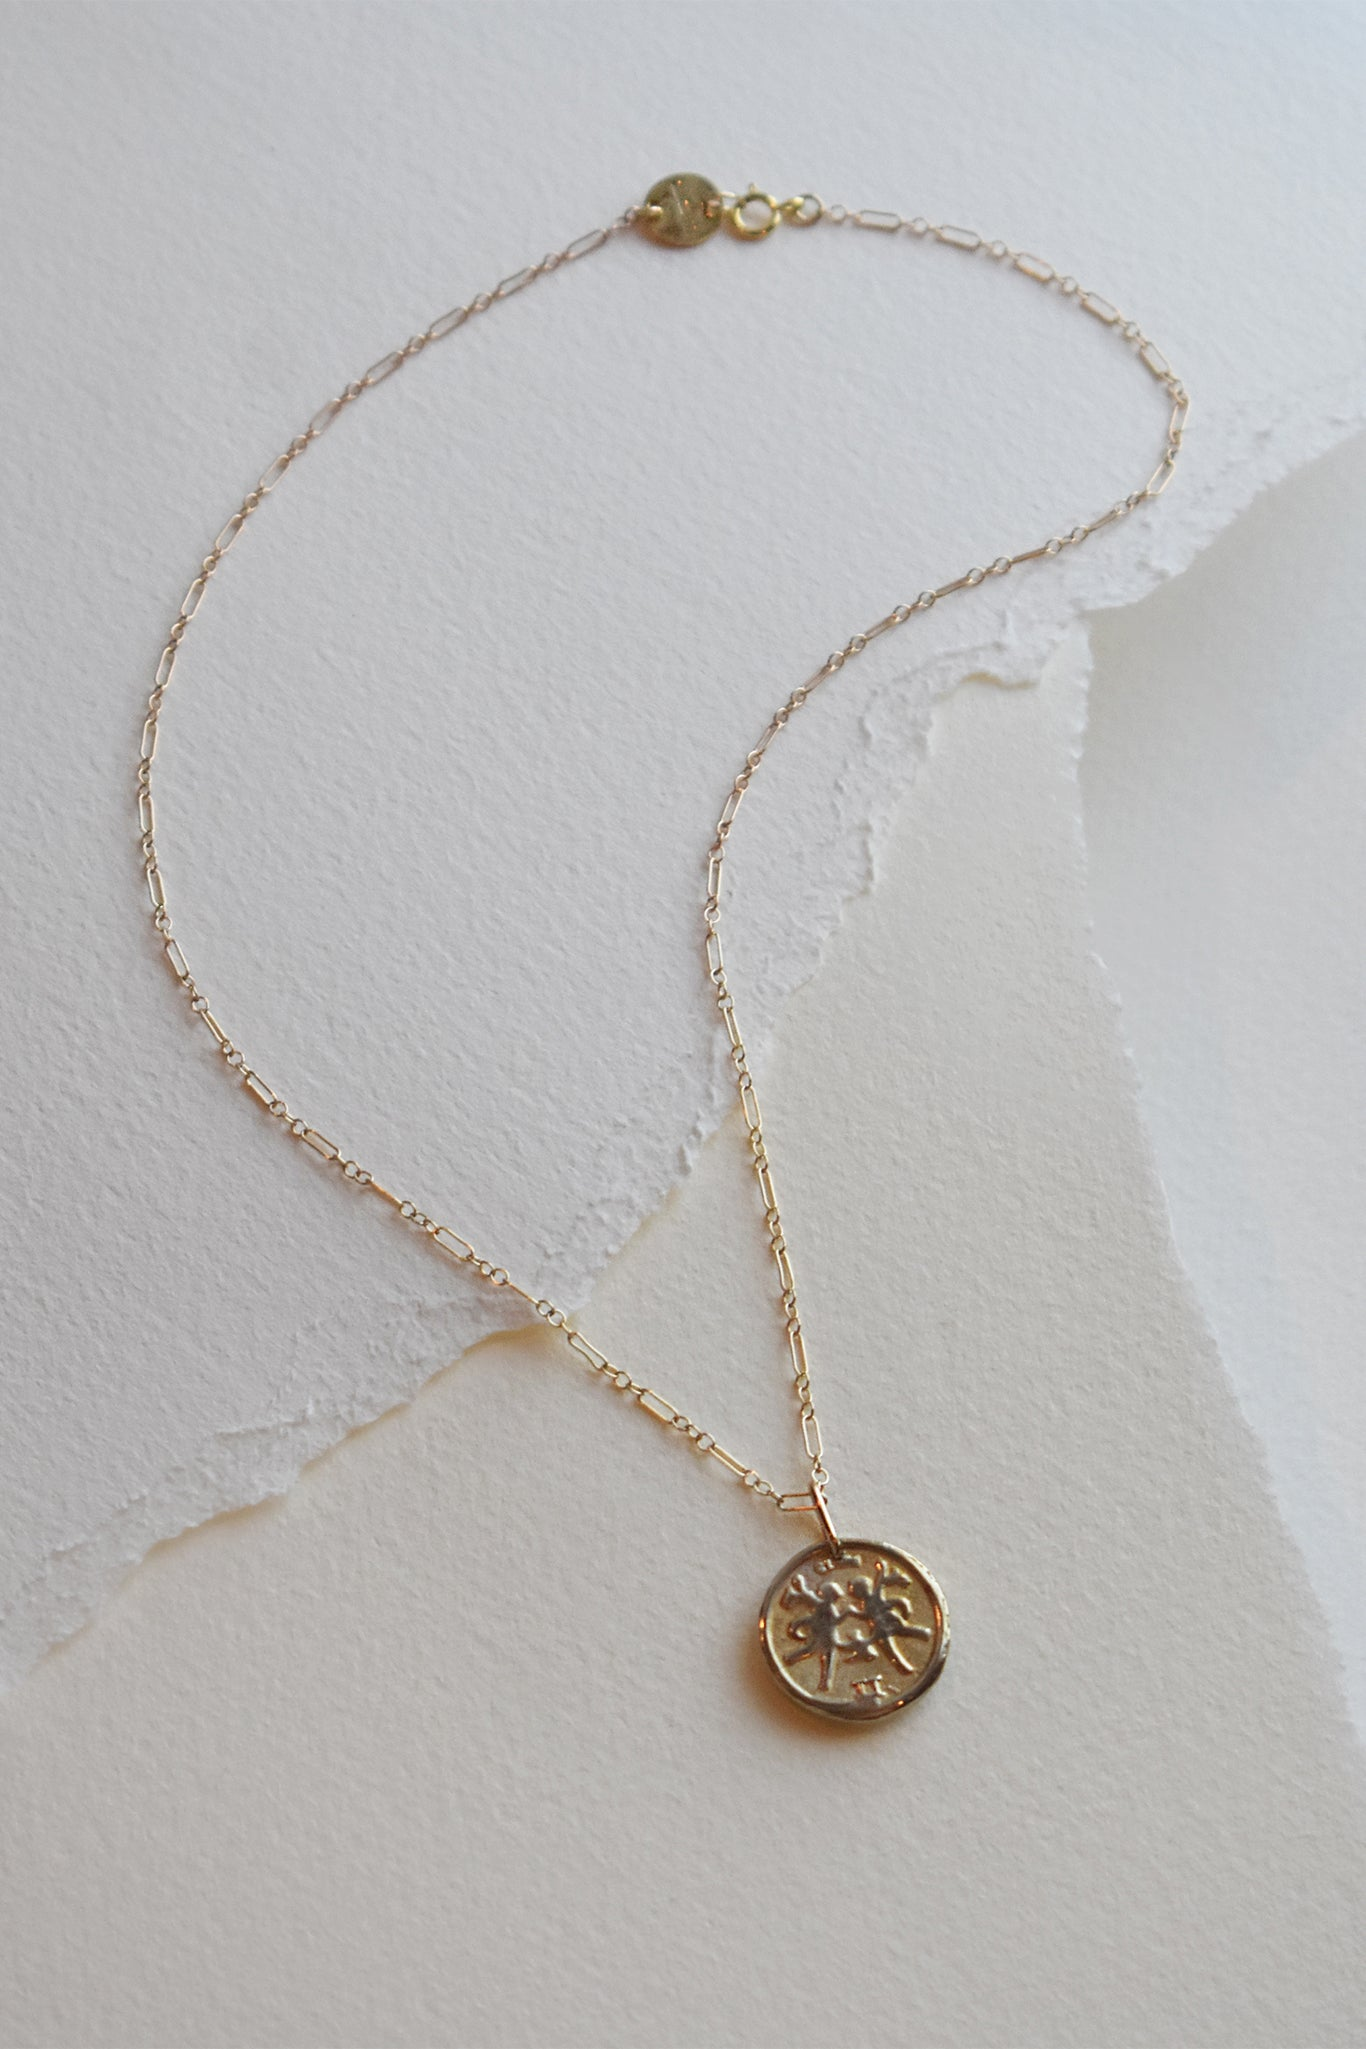 mmddyyyy Zodiac Coin Charm with Chain